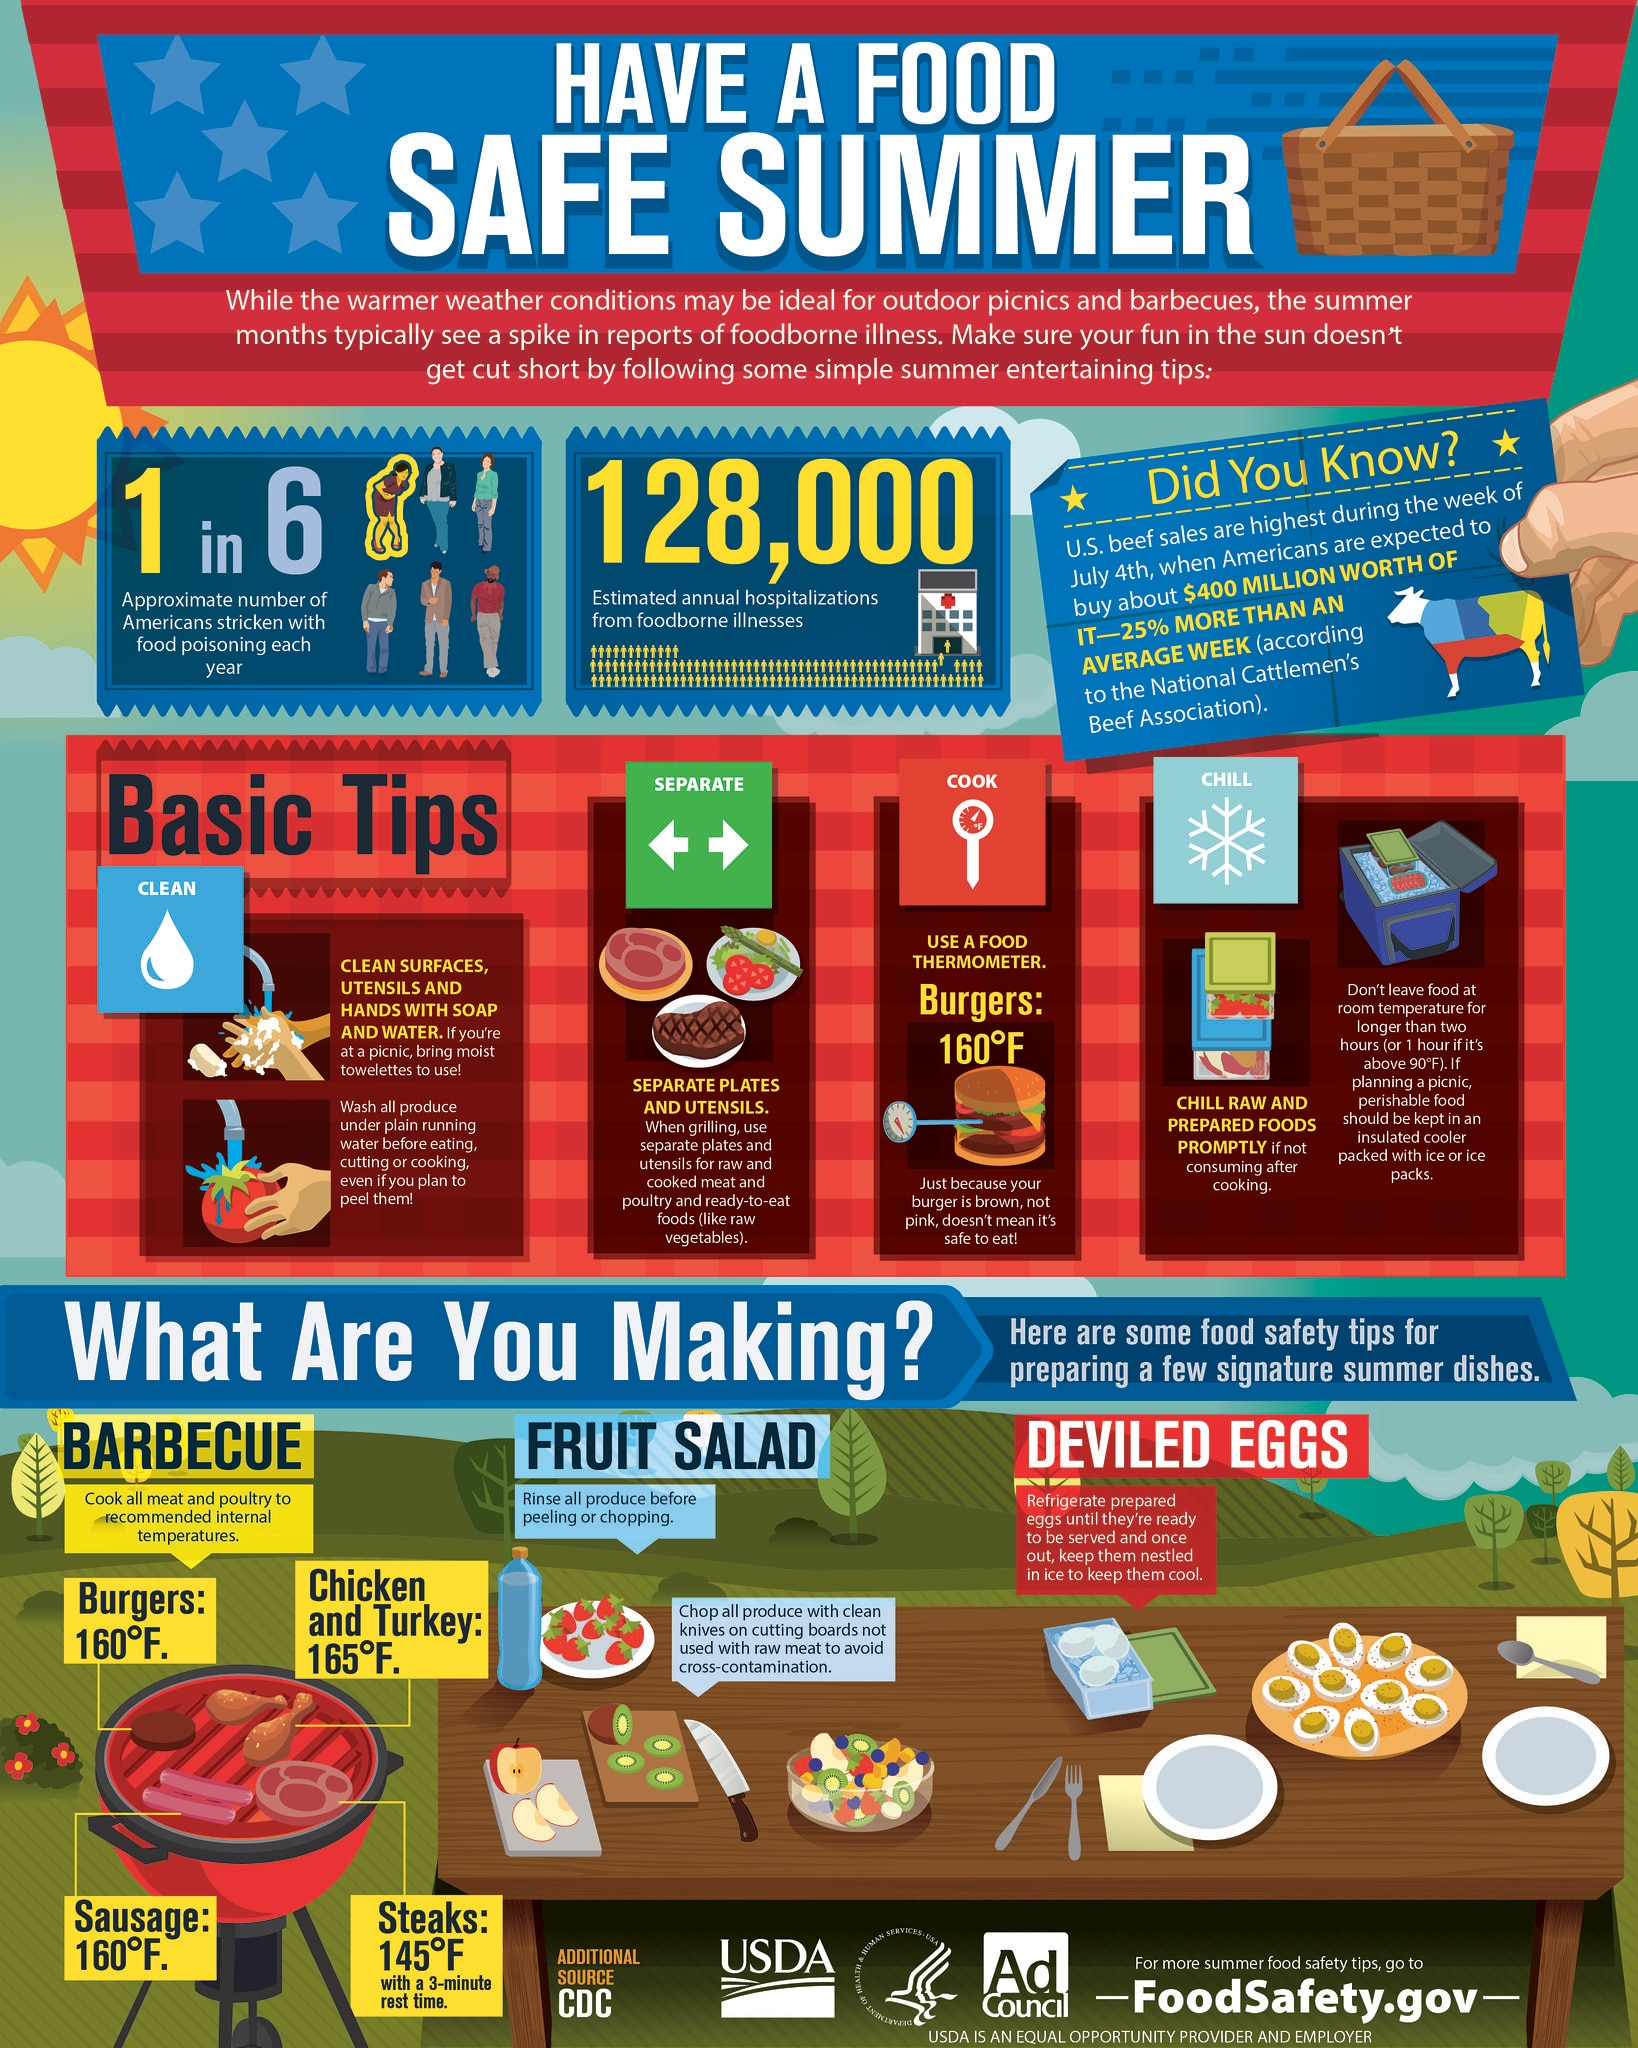 Infographic from FoodSafety.gov with tips for a food-safe summer and safely preparing signature summer dishes.